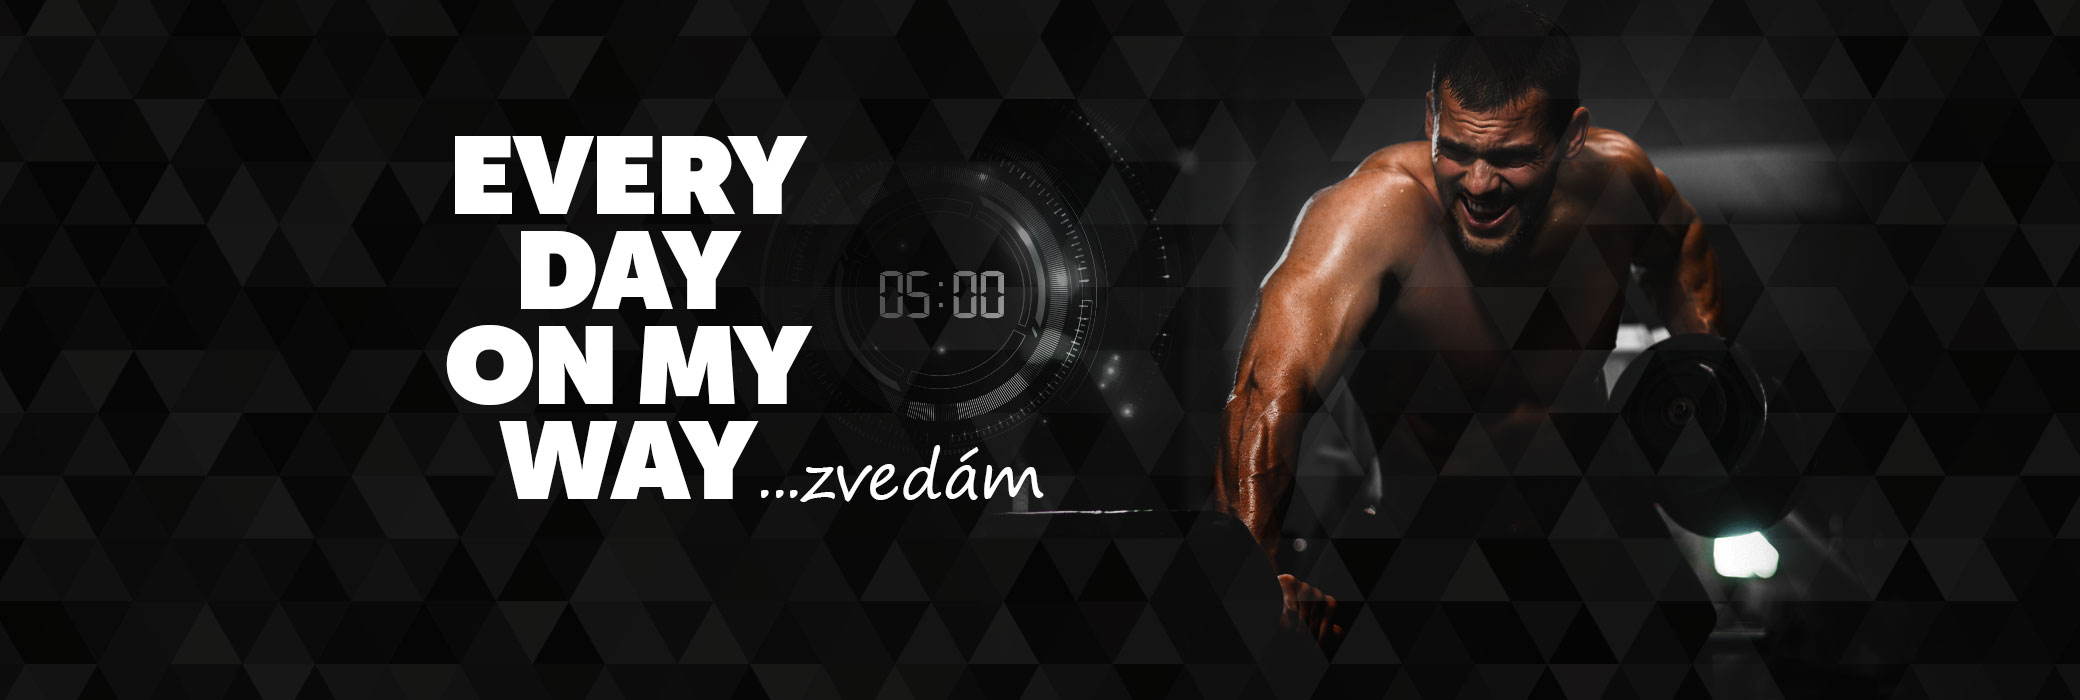 EVERY DAY ON MY WAY - zvedám